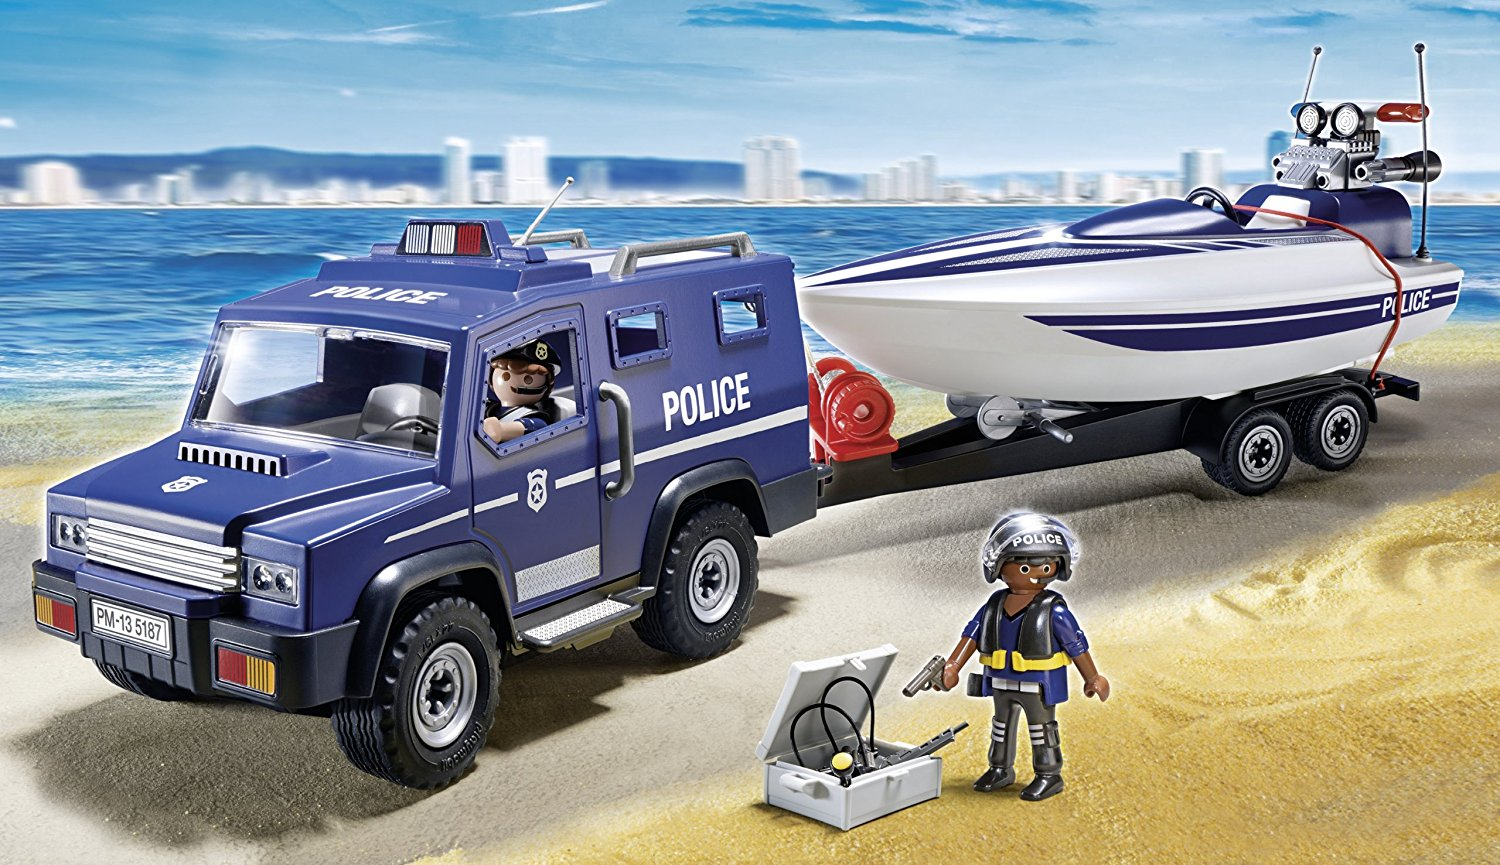 Fourgon et vedette de police Playmobil City Action 5187